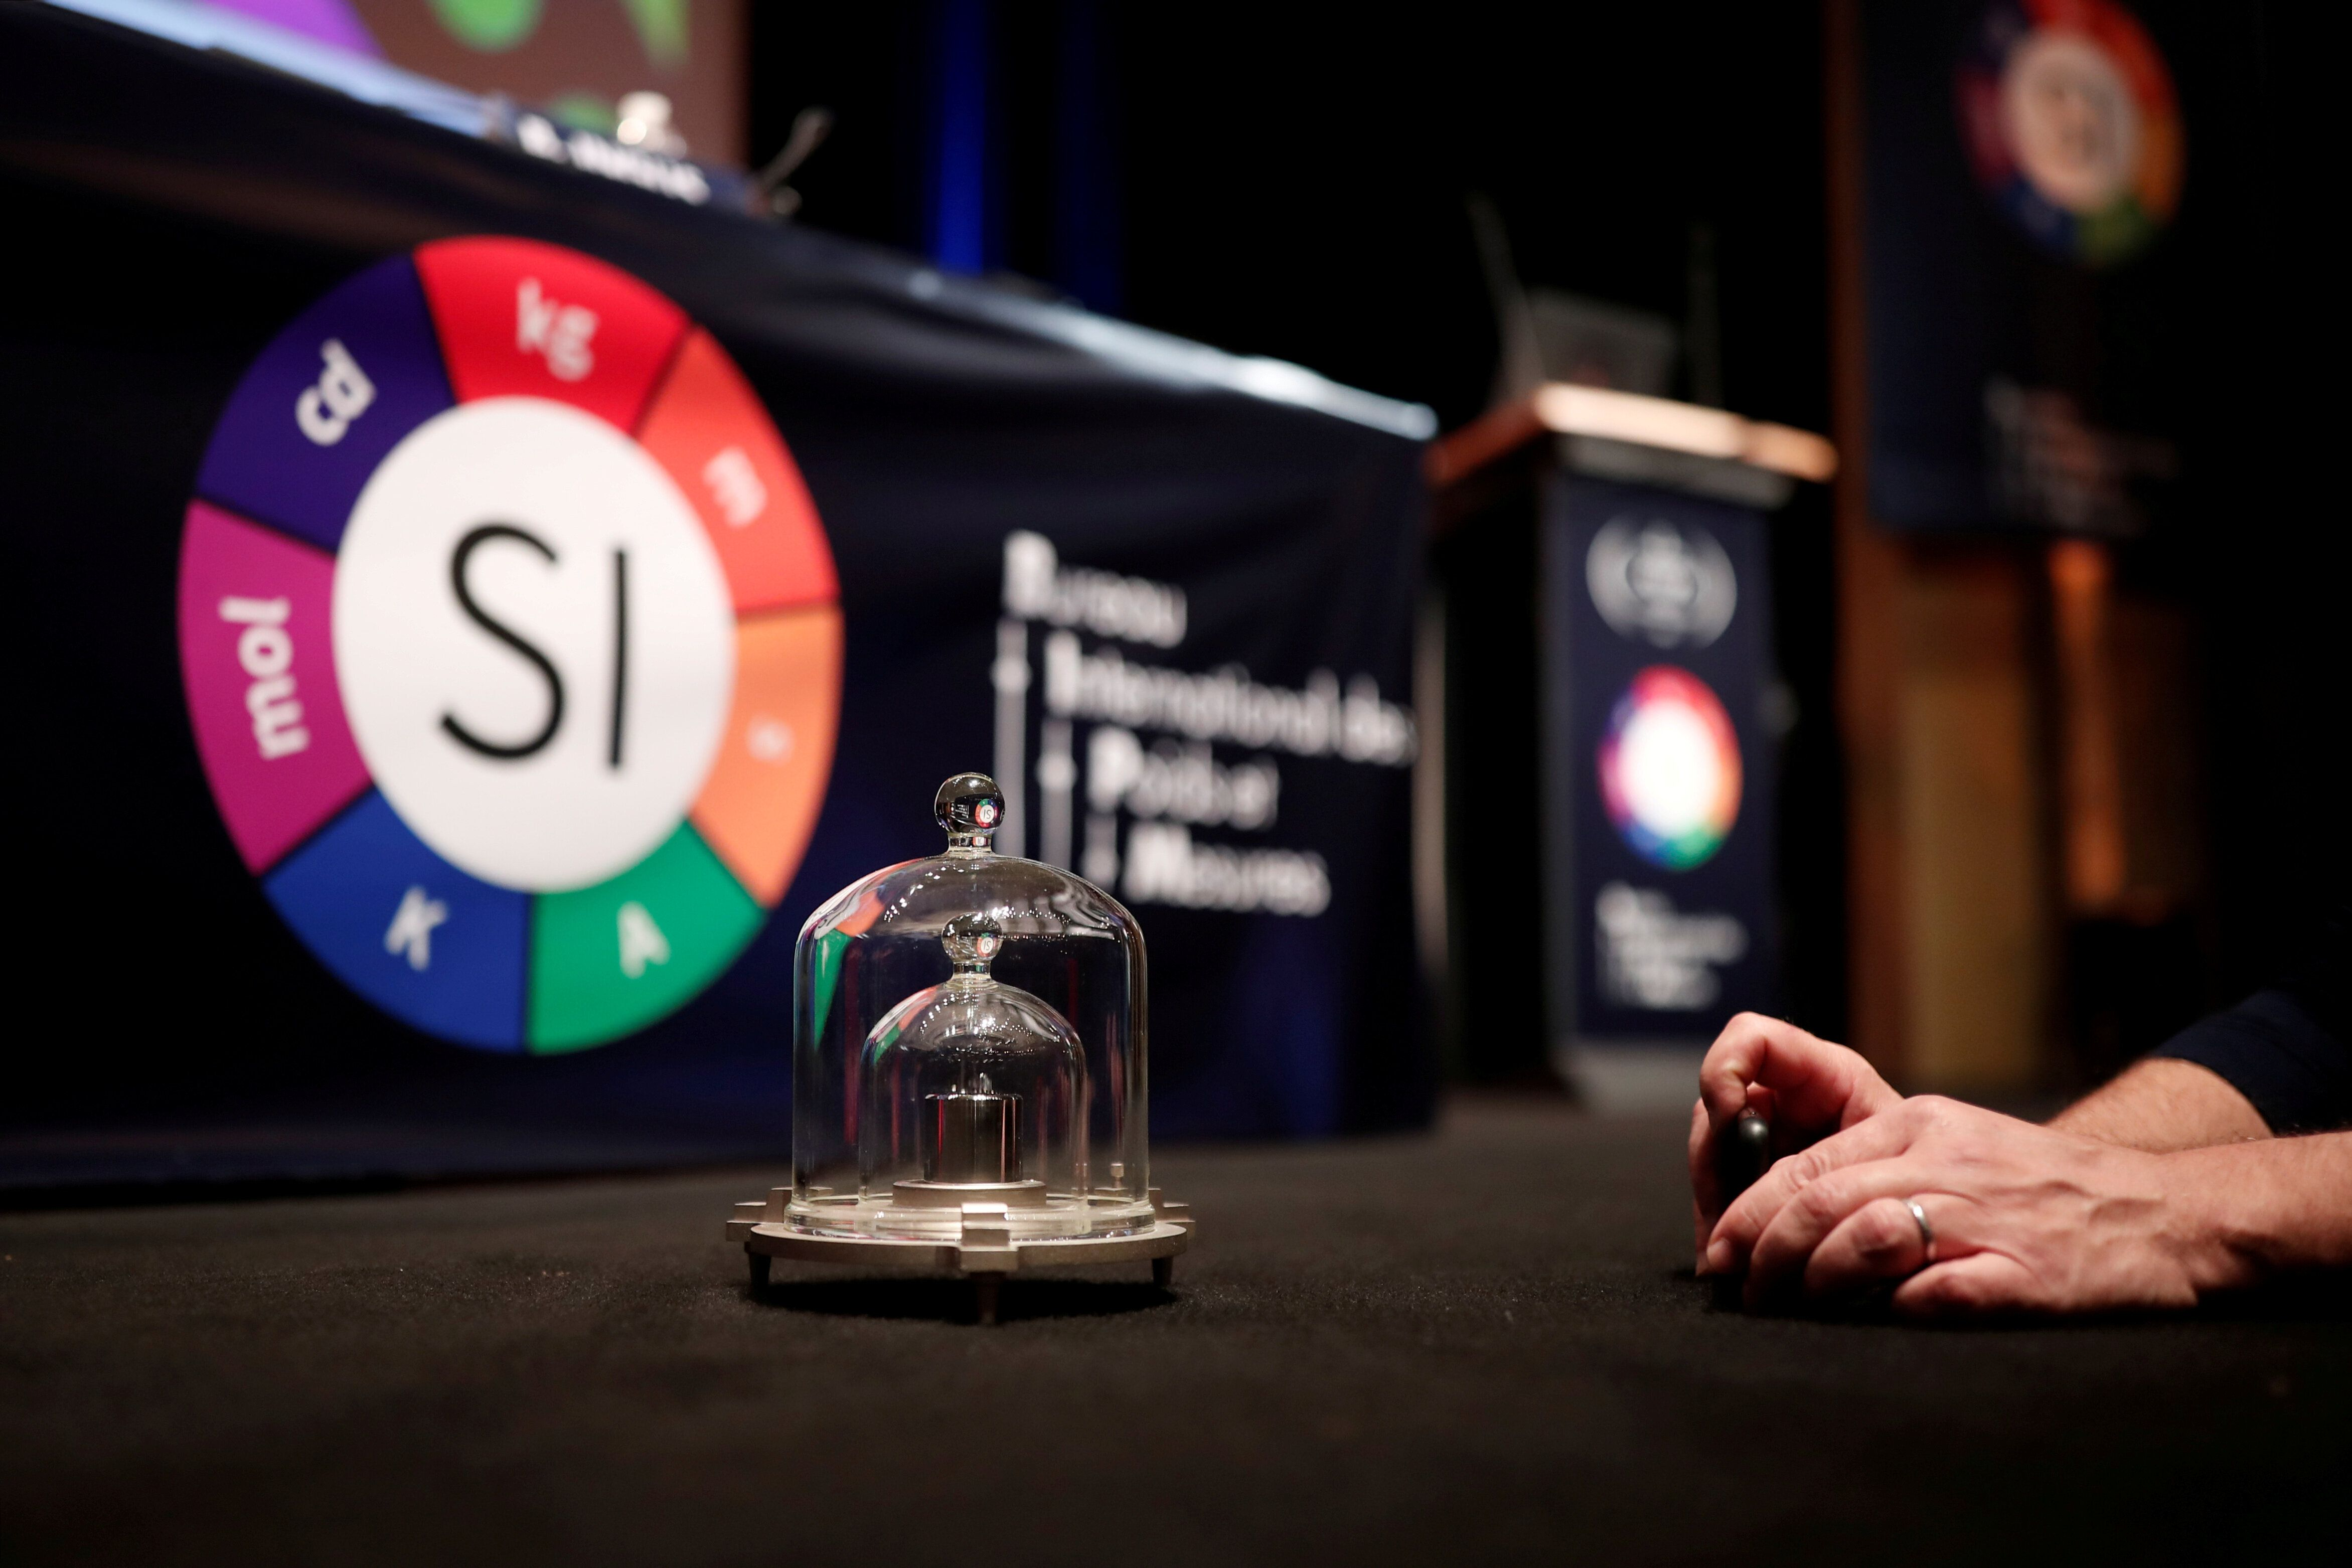 Kilogram Redefined: India Adopts New Standards For Measuring